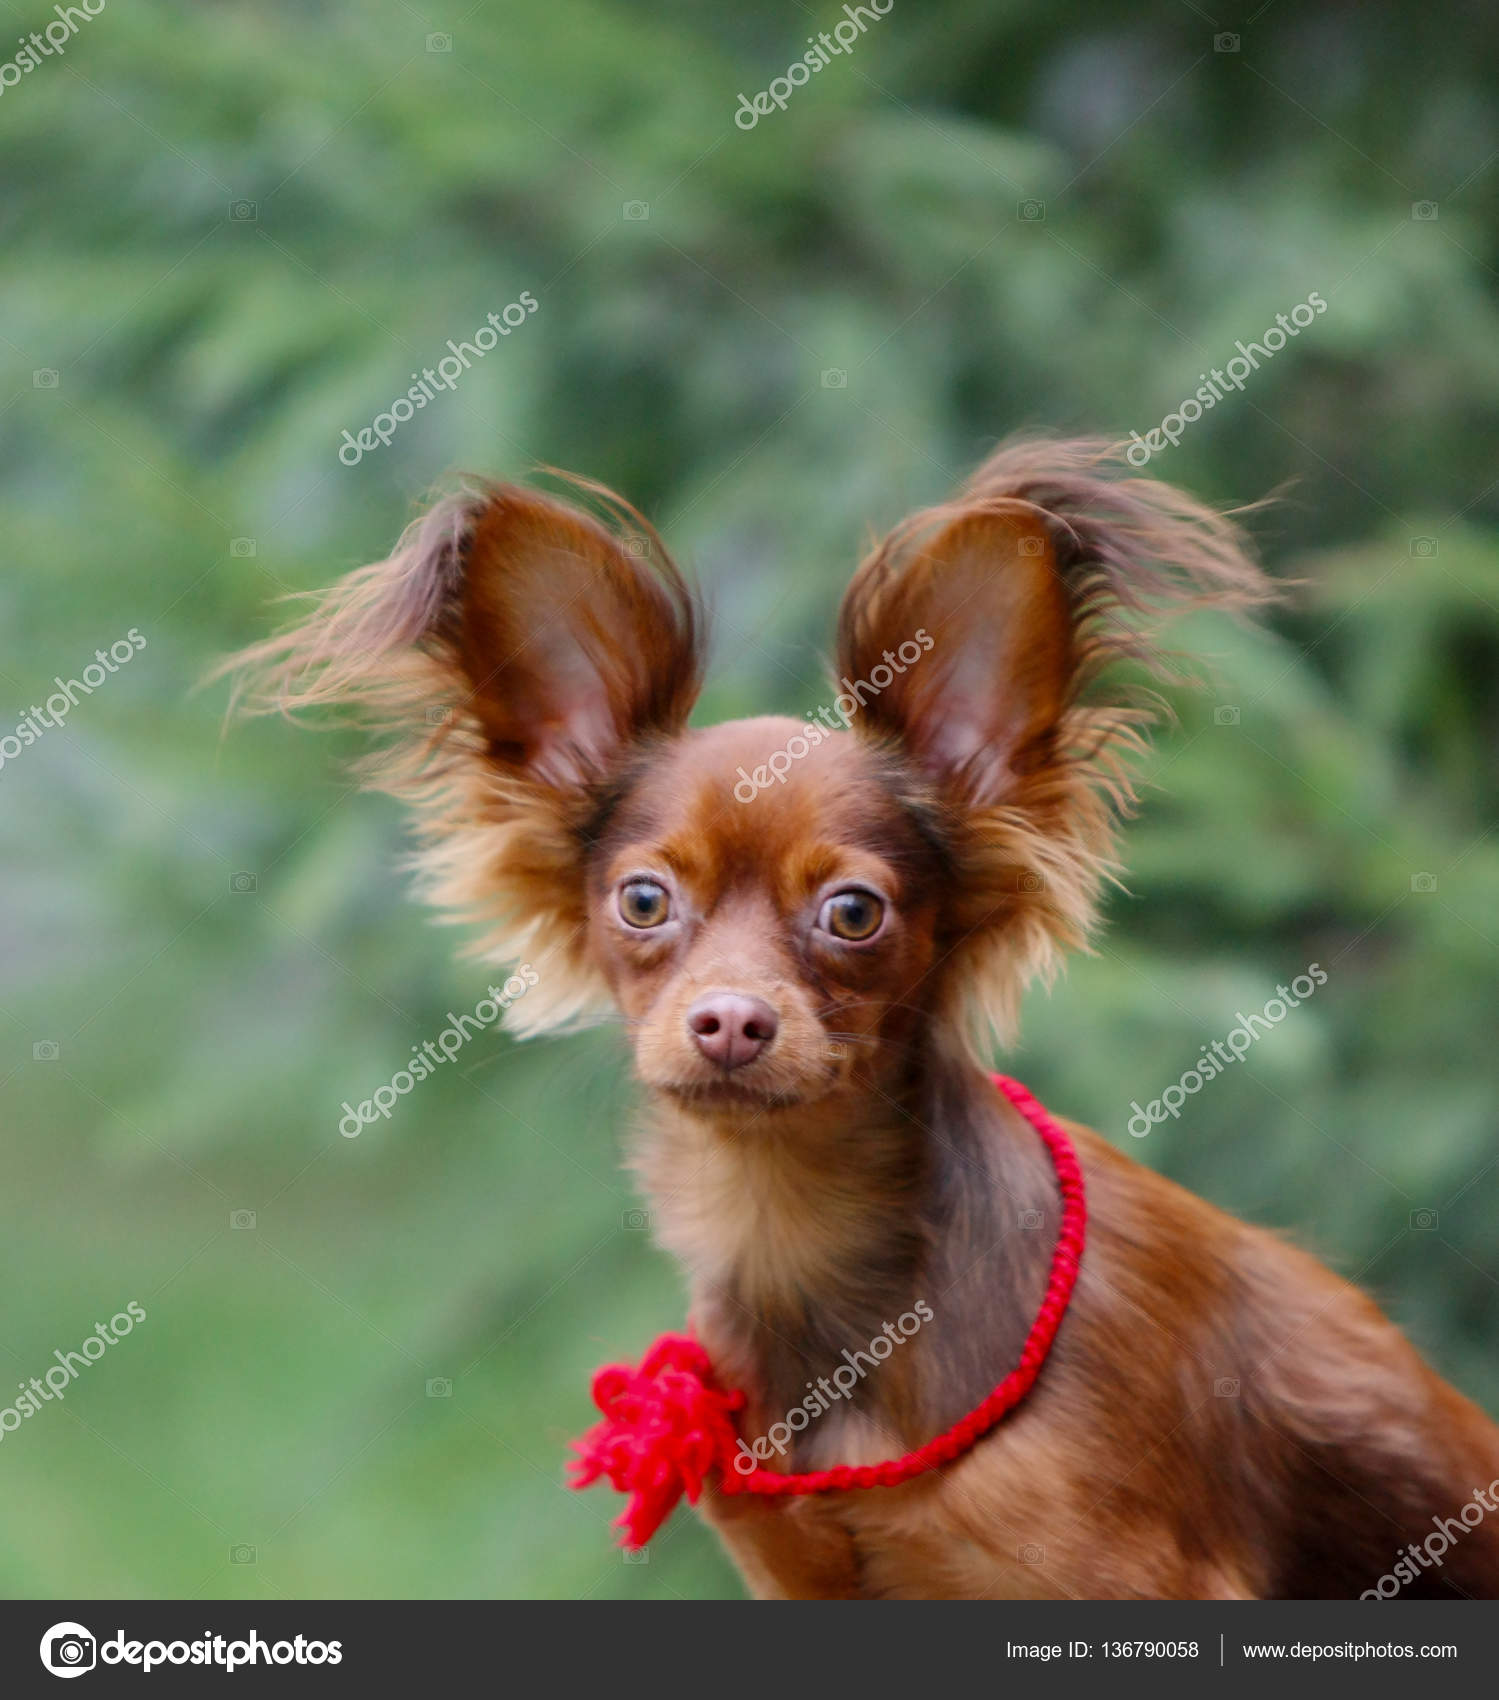 Up Portrait Of A Red Dog Puppy With Raised Ears And Long